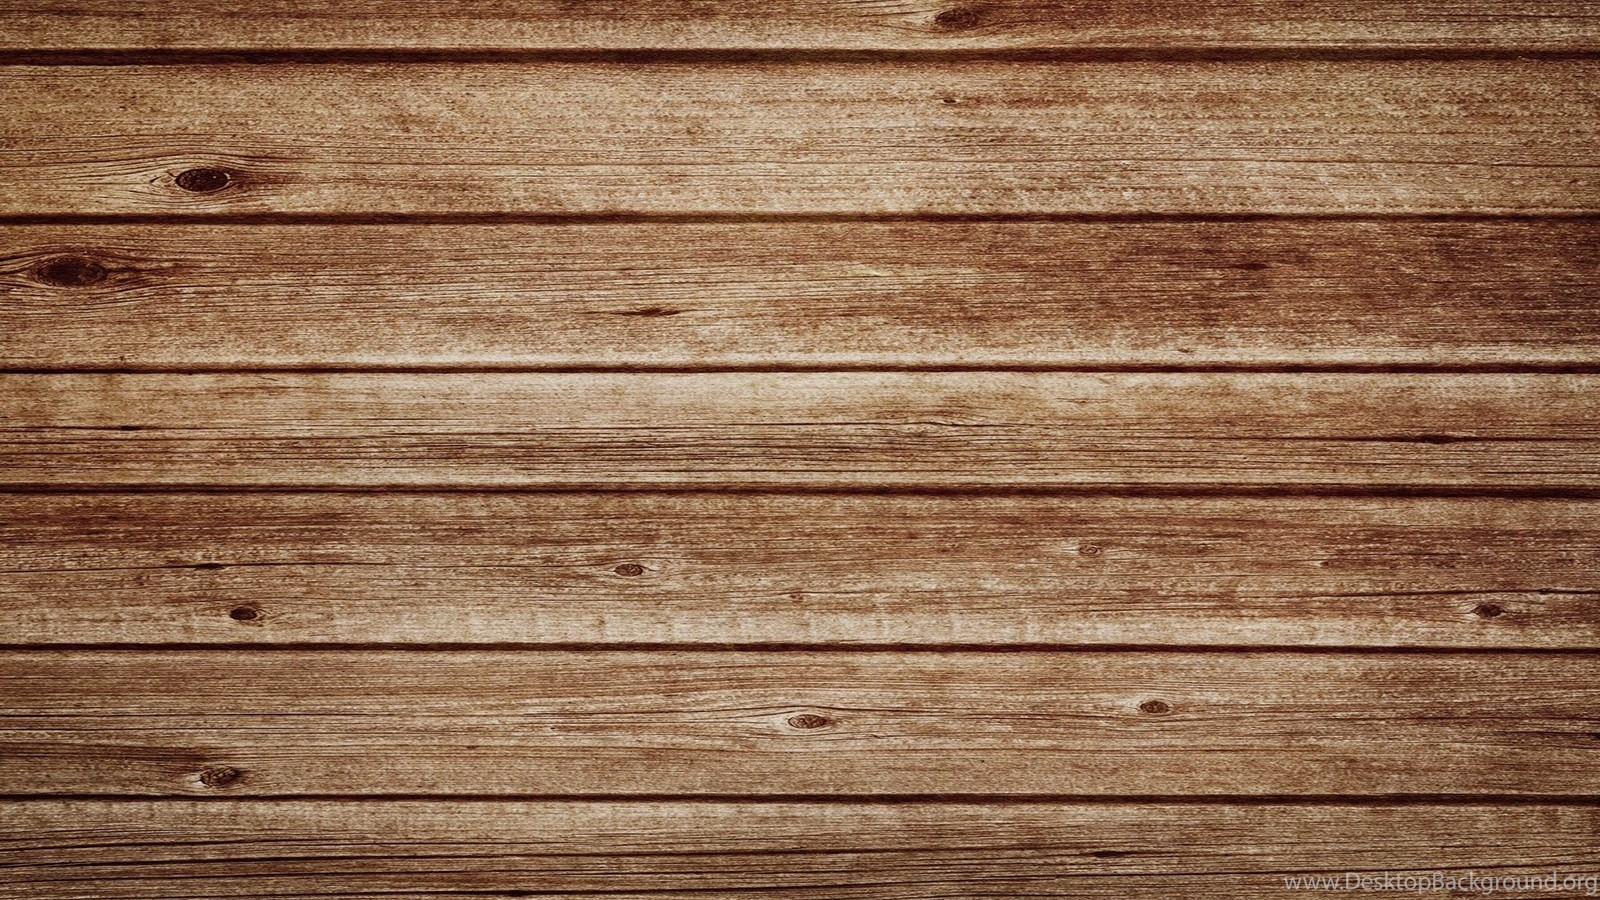 Wallpaper For Iphone 5c Free Wood Panel Hd Backgrounds Bible Clipart Desktop Background